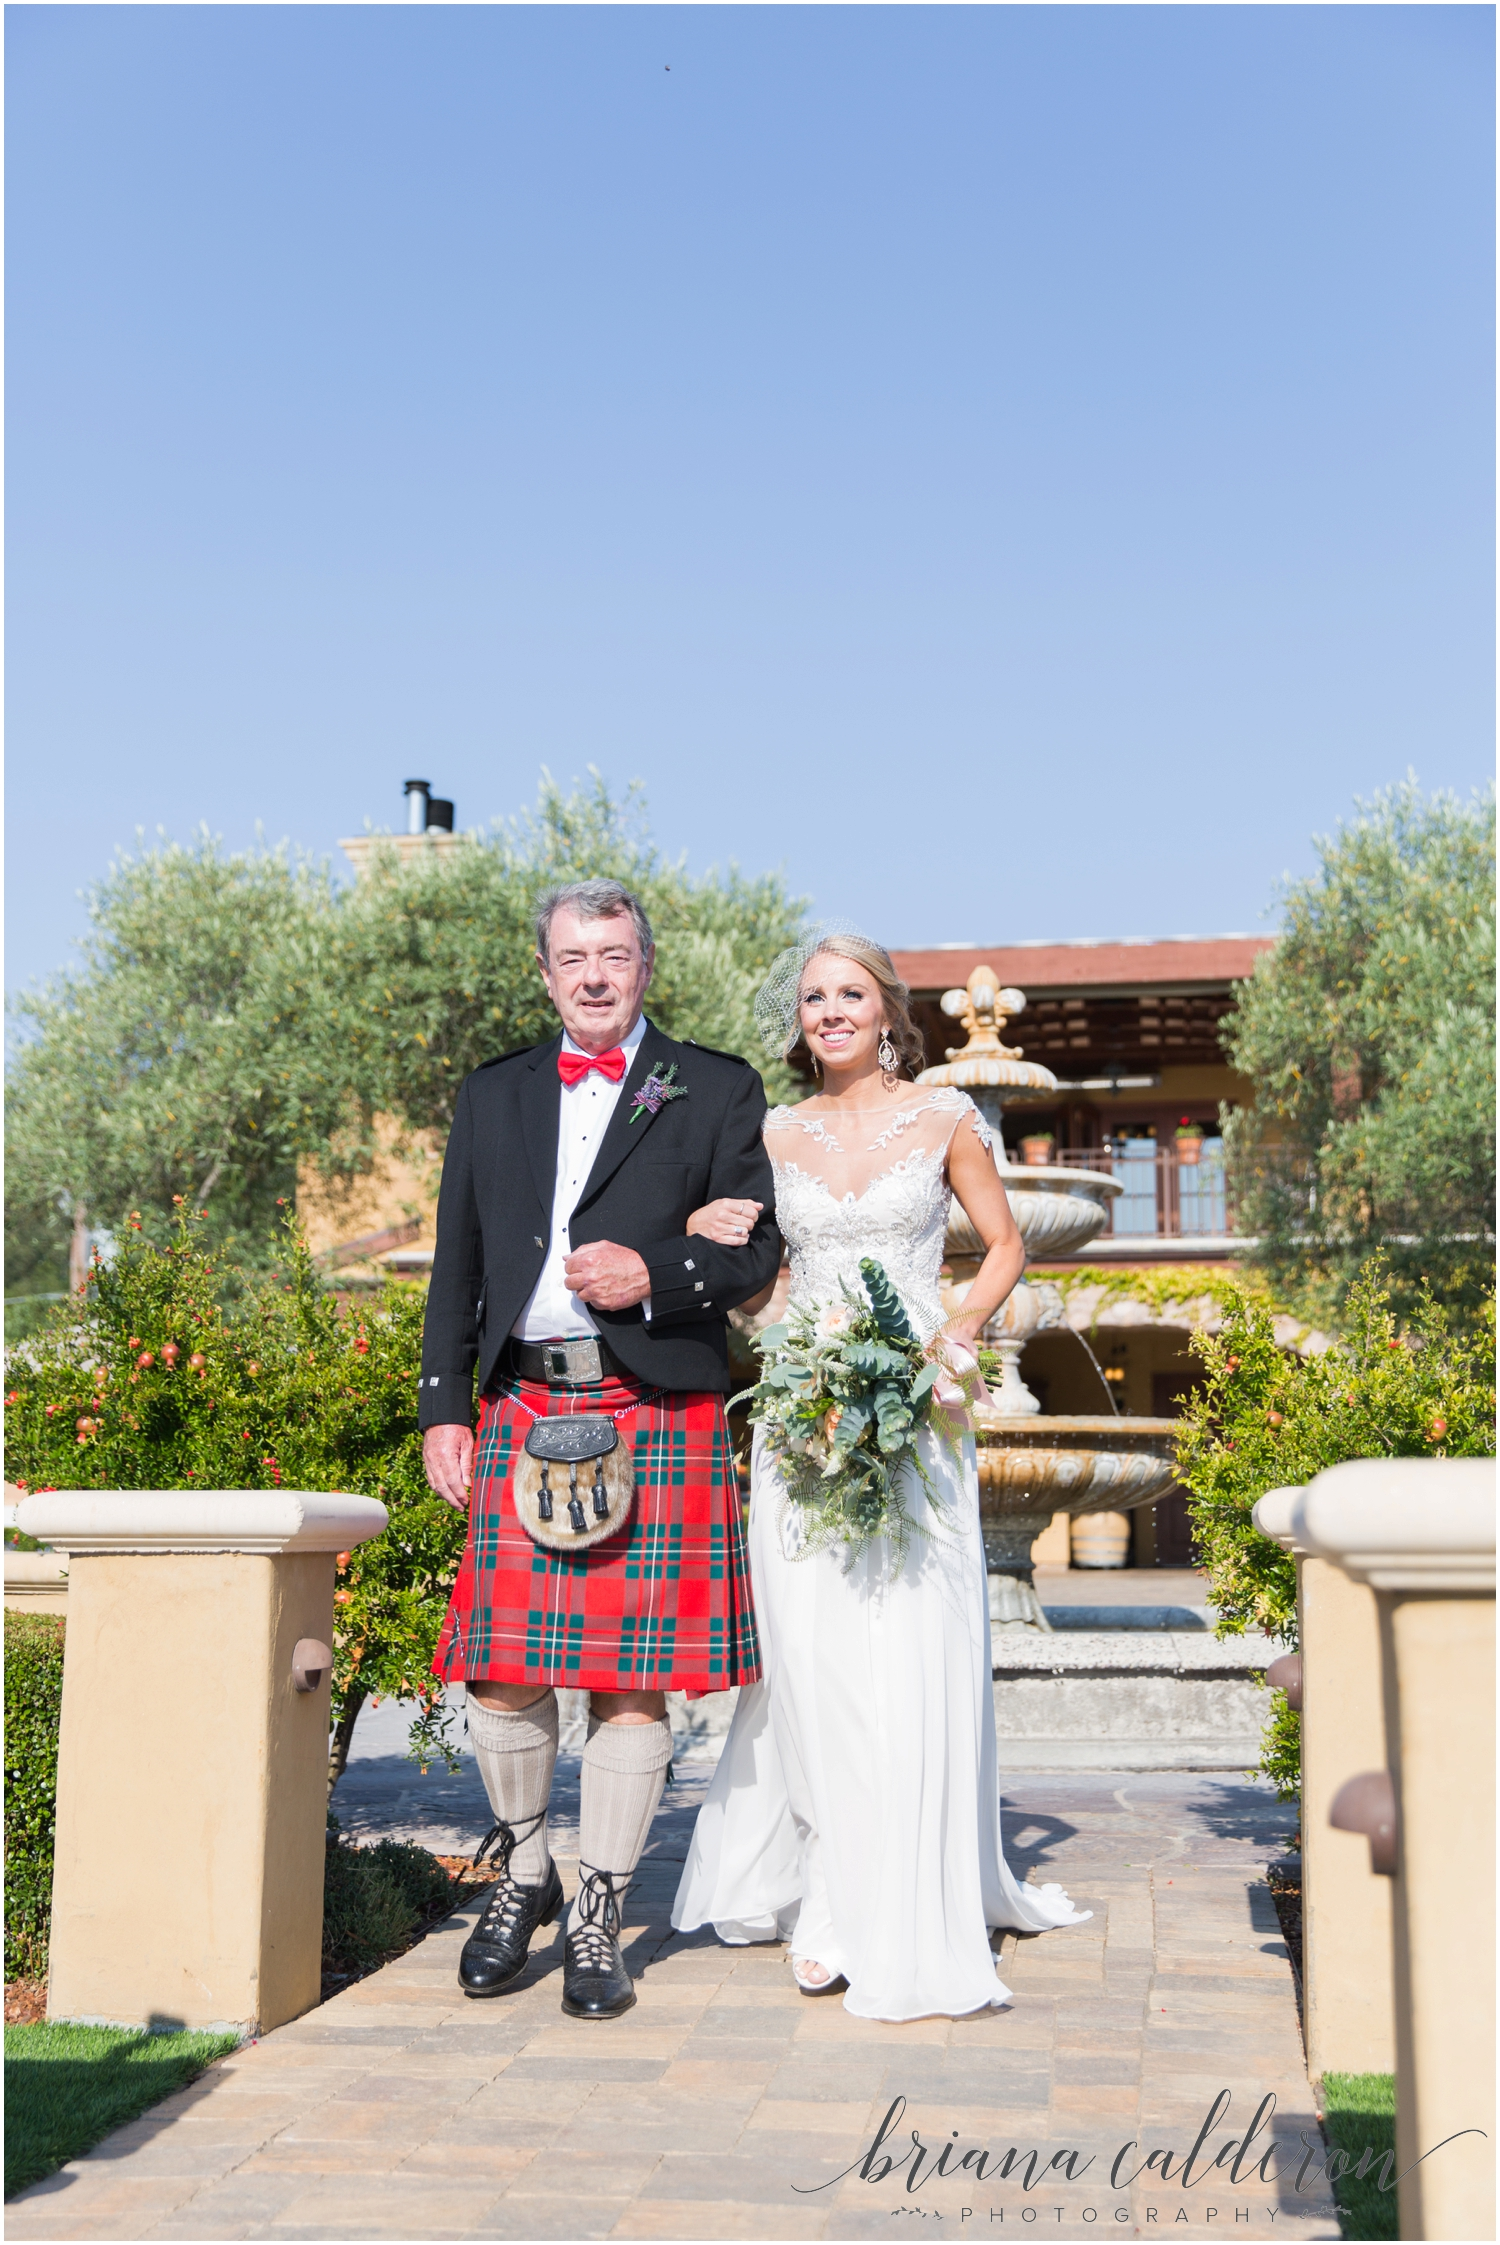 Regale Winery Wedding photos by Briana Calderon Photography_0667.jpg